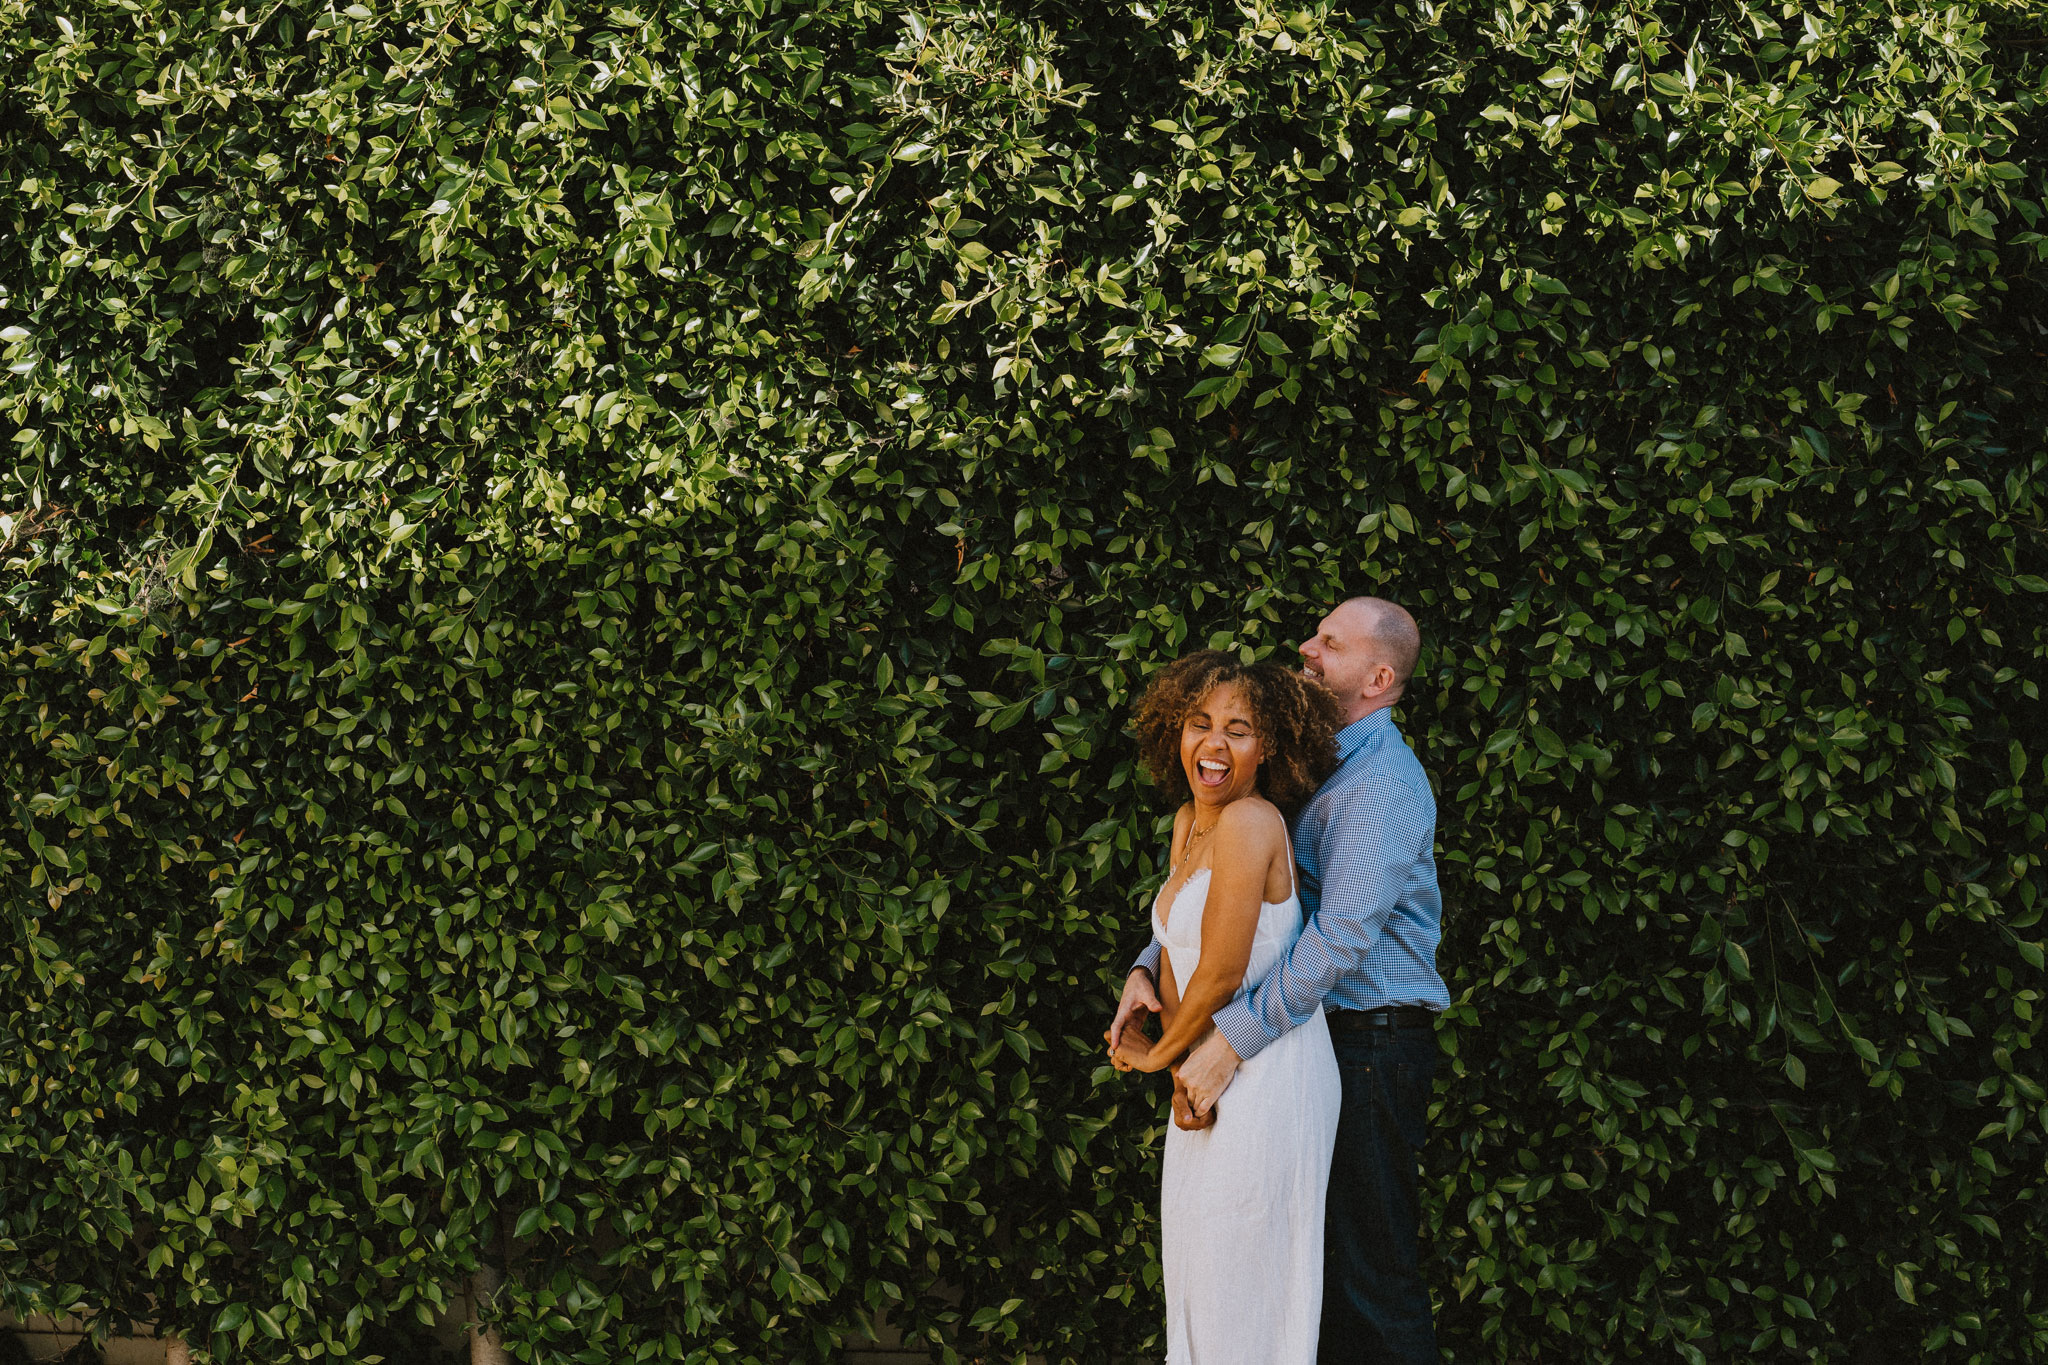 newlywed couple embracing in front of green wall at their wedding by los angeles photographer Rebecca y los otras